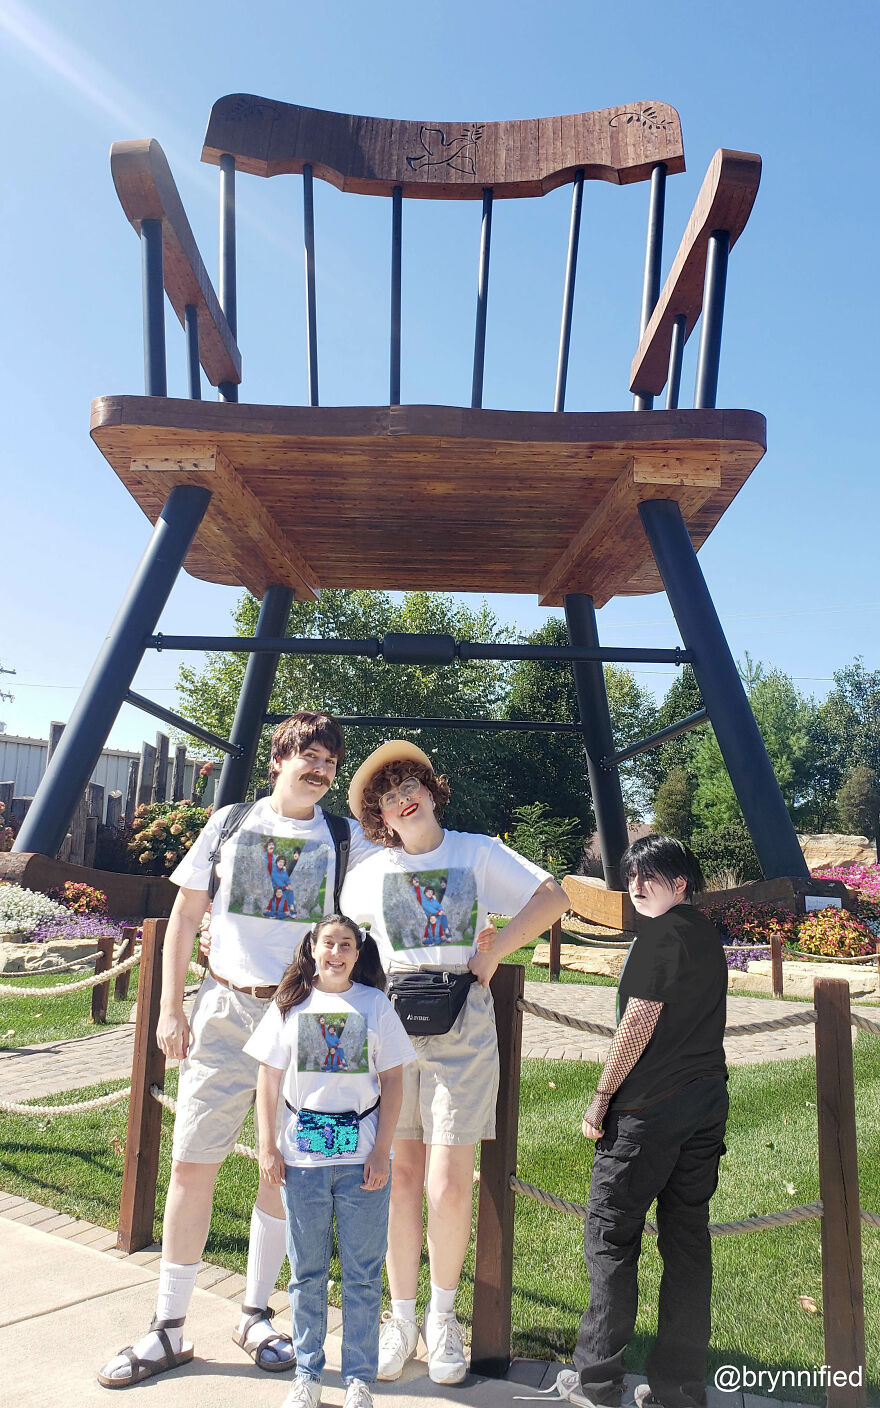 The World's Largest Rocking Chair—Casey, IL